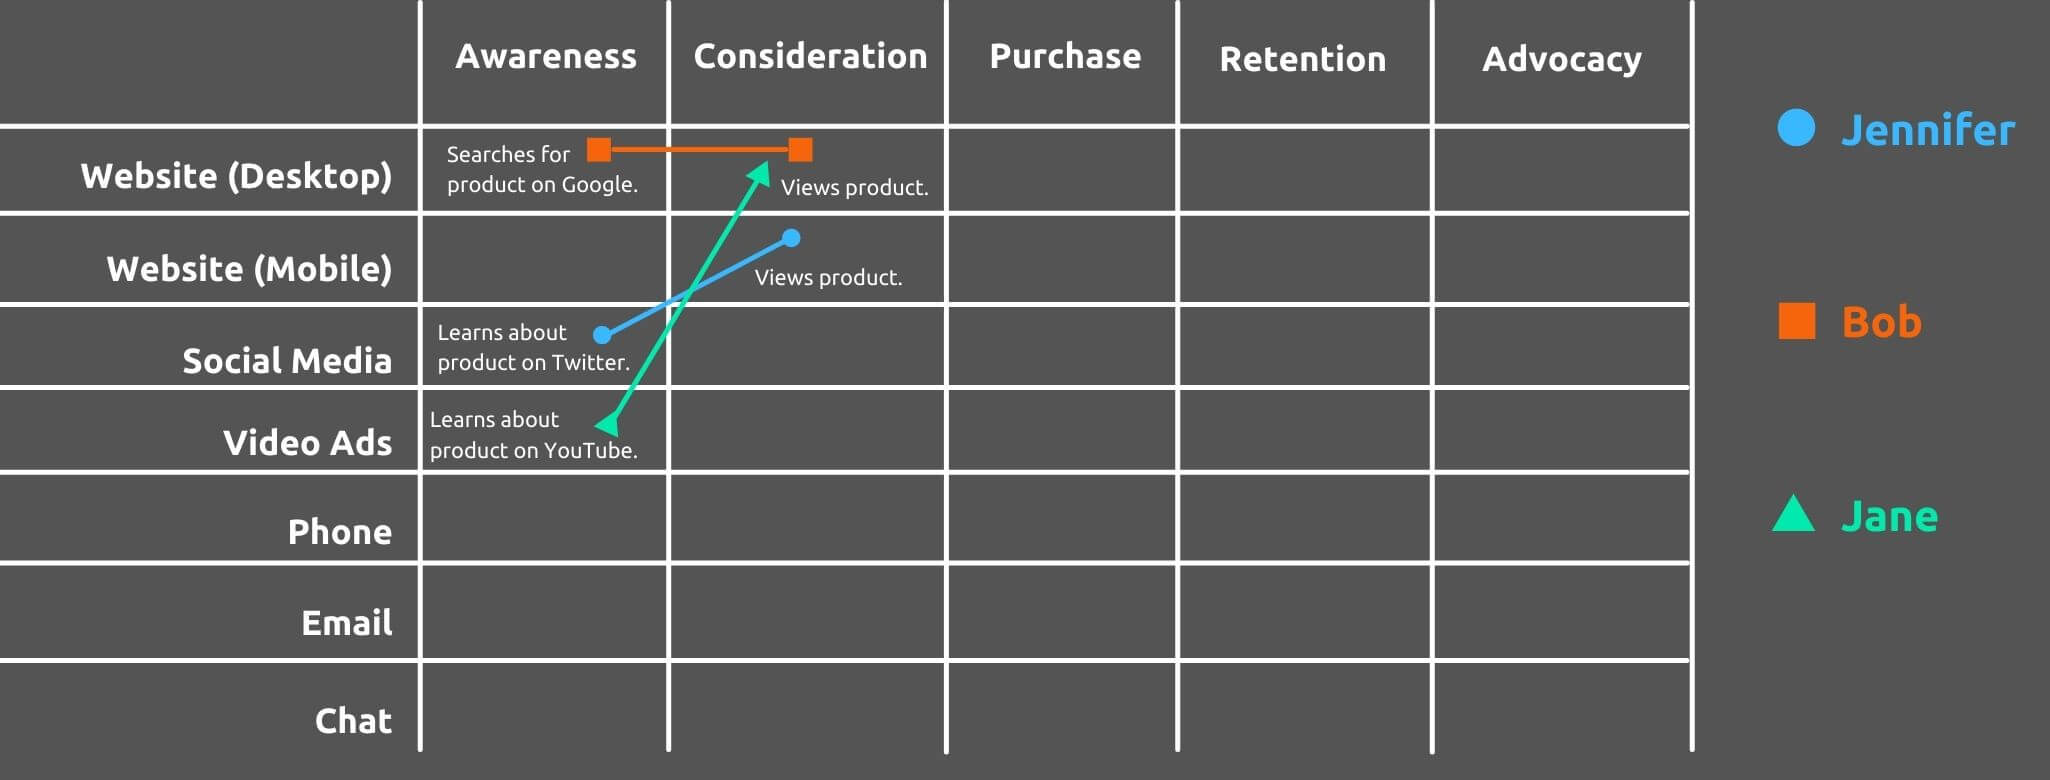 Mock Up Customer Thoughts and Actions - How to Create a Customer Journey Map - Replyco Helpdesk Software for eCommerce